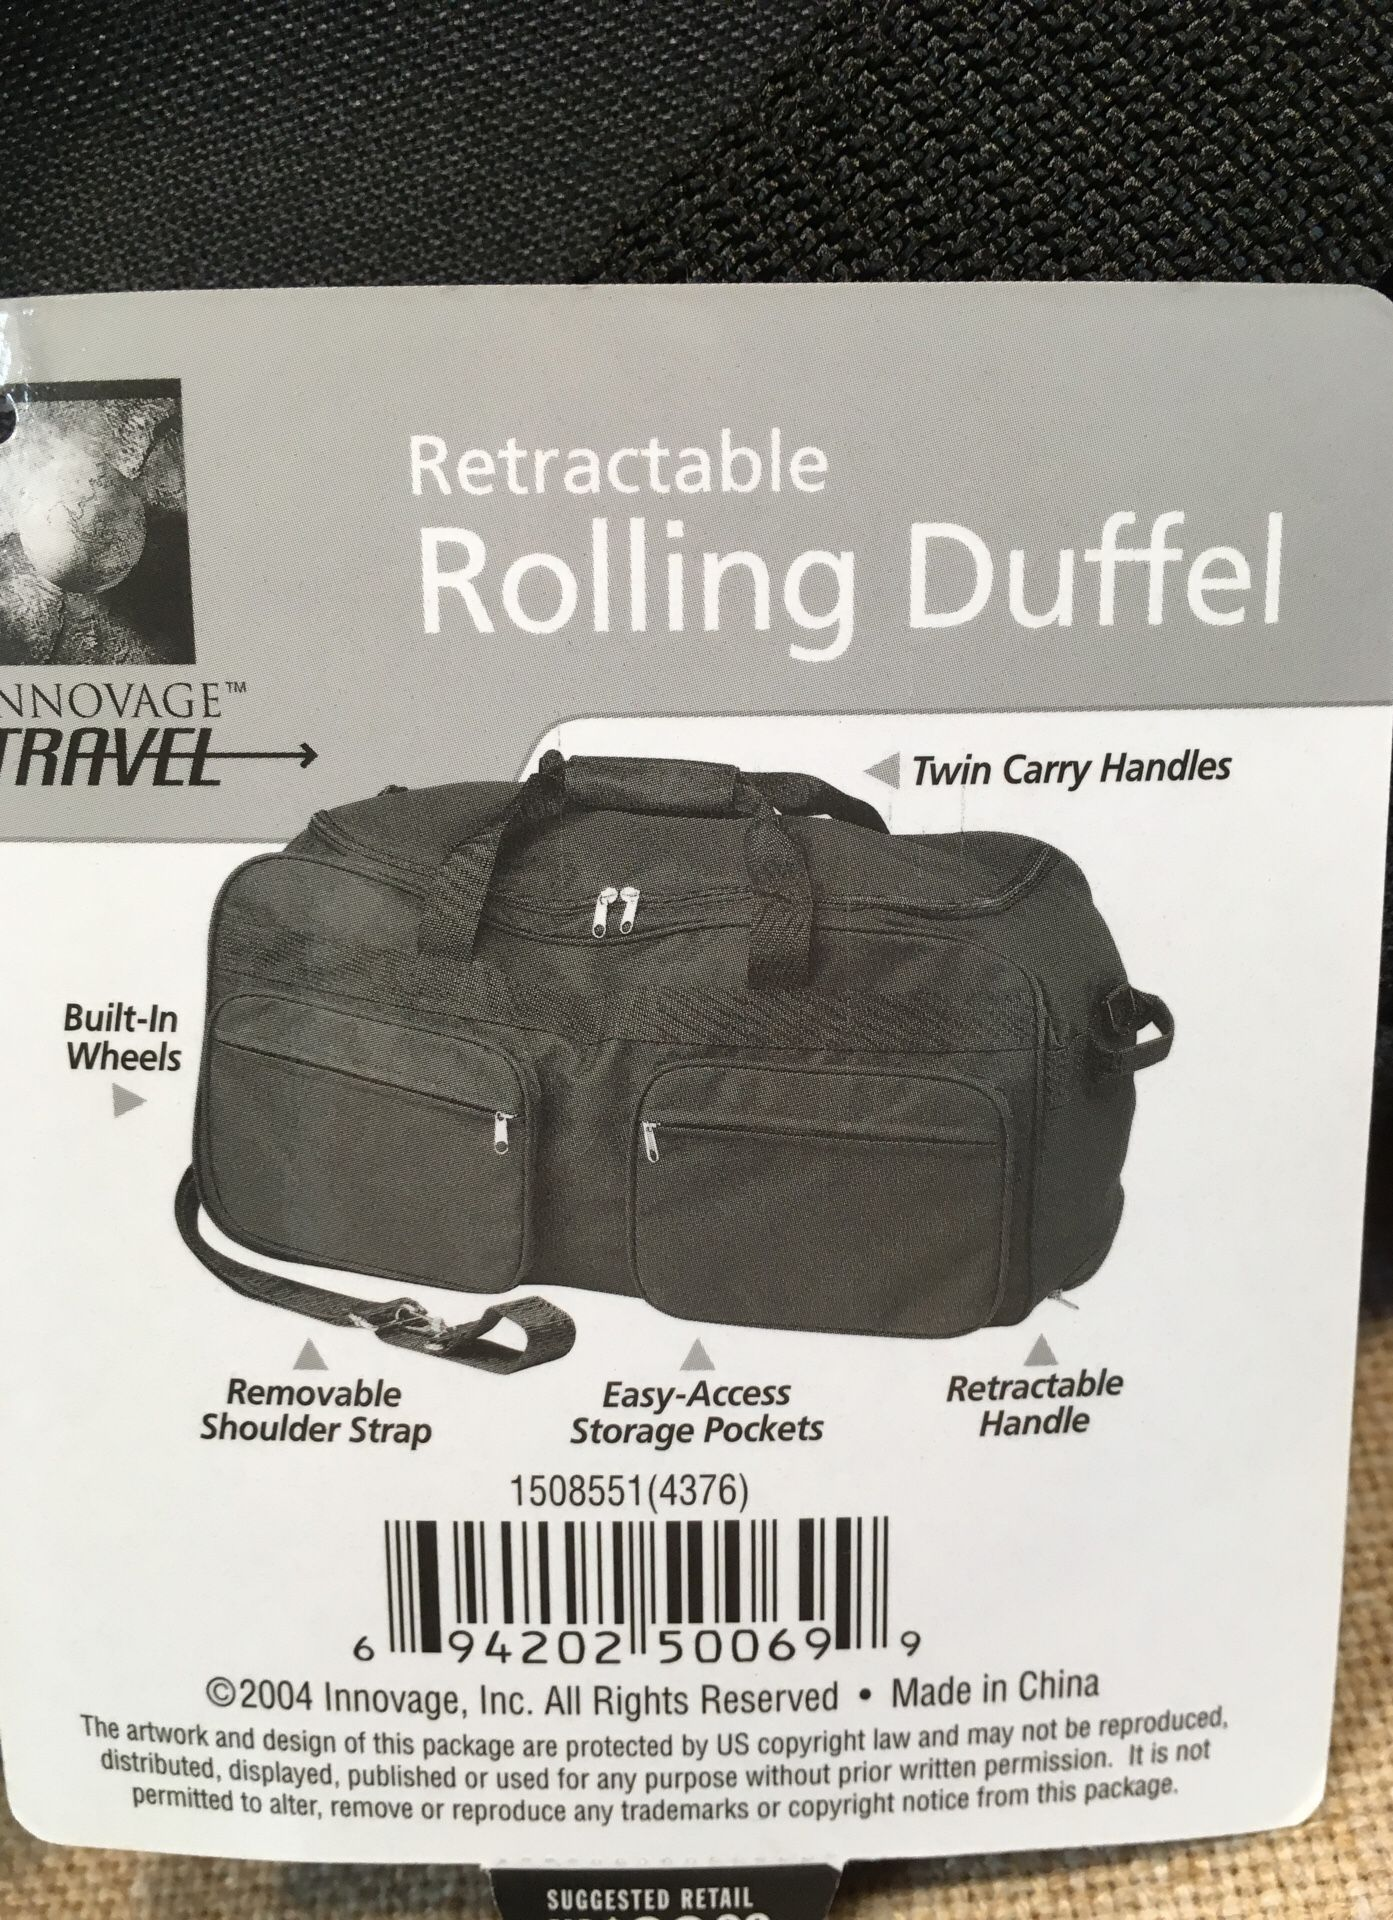 Retractable rolling duffel bag carry bag shoulder travel bag rolling bag with retractable handle zippered bag tote travel luggage light weight